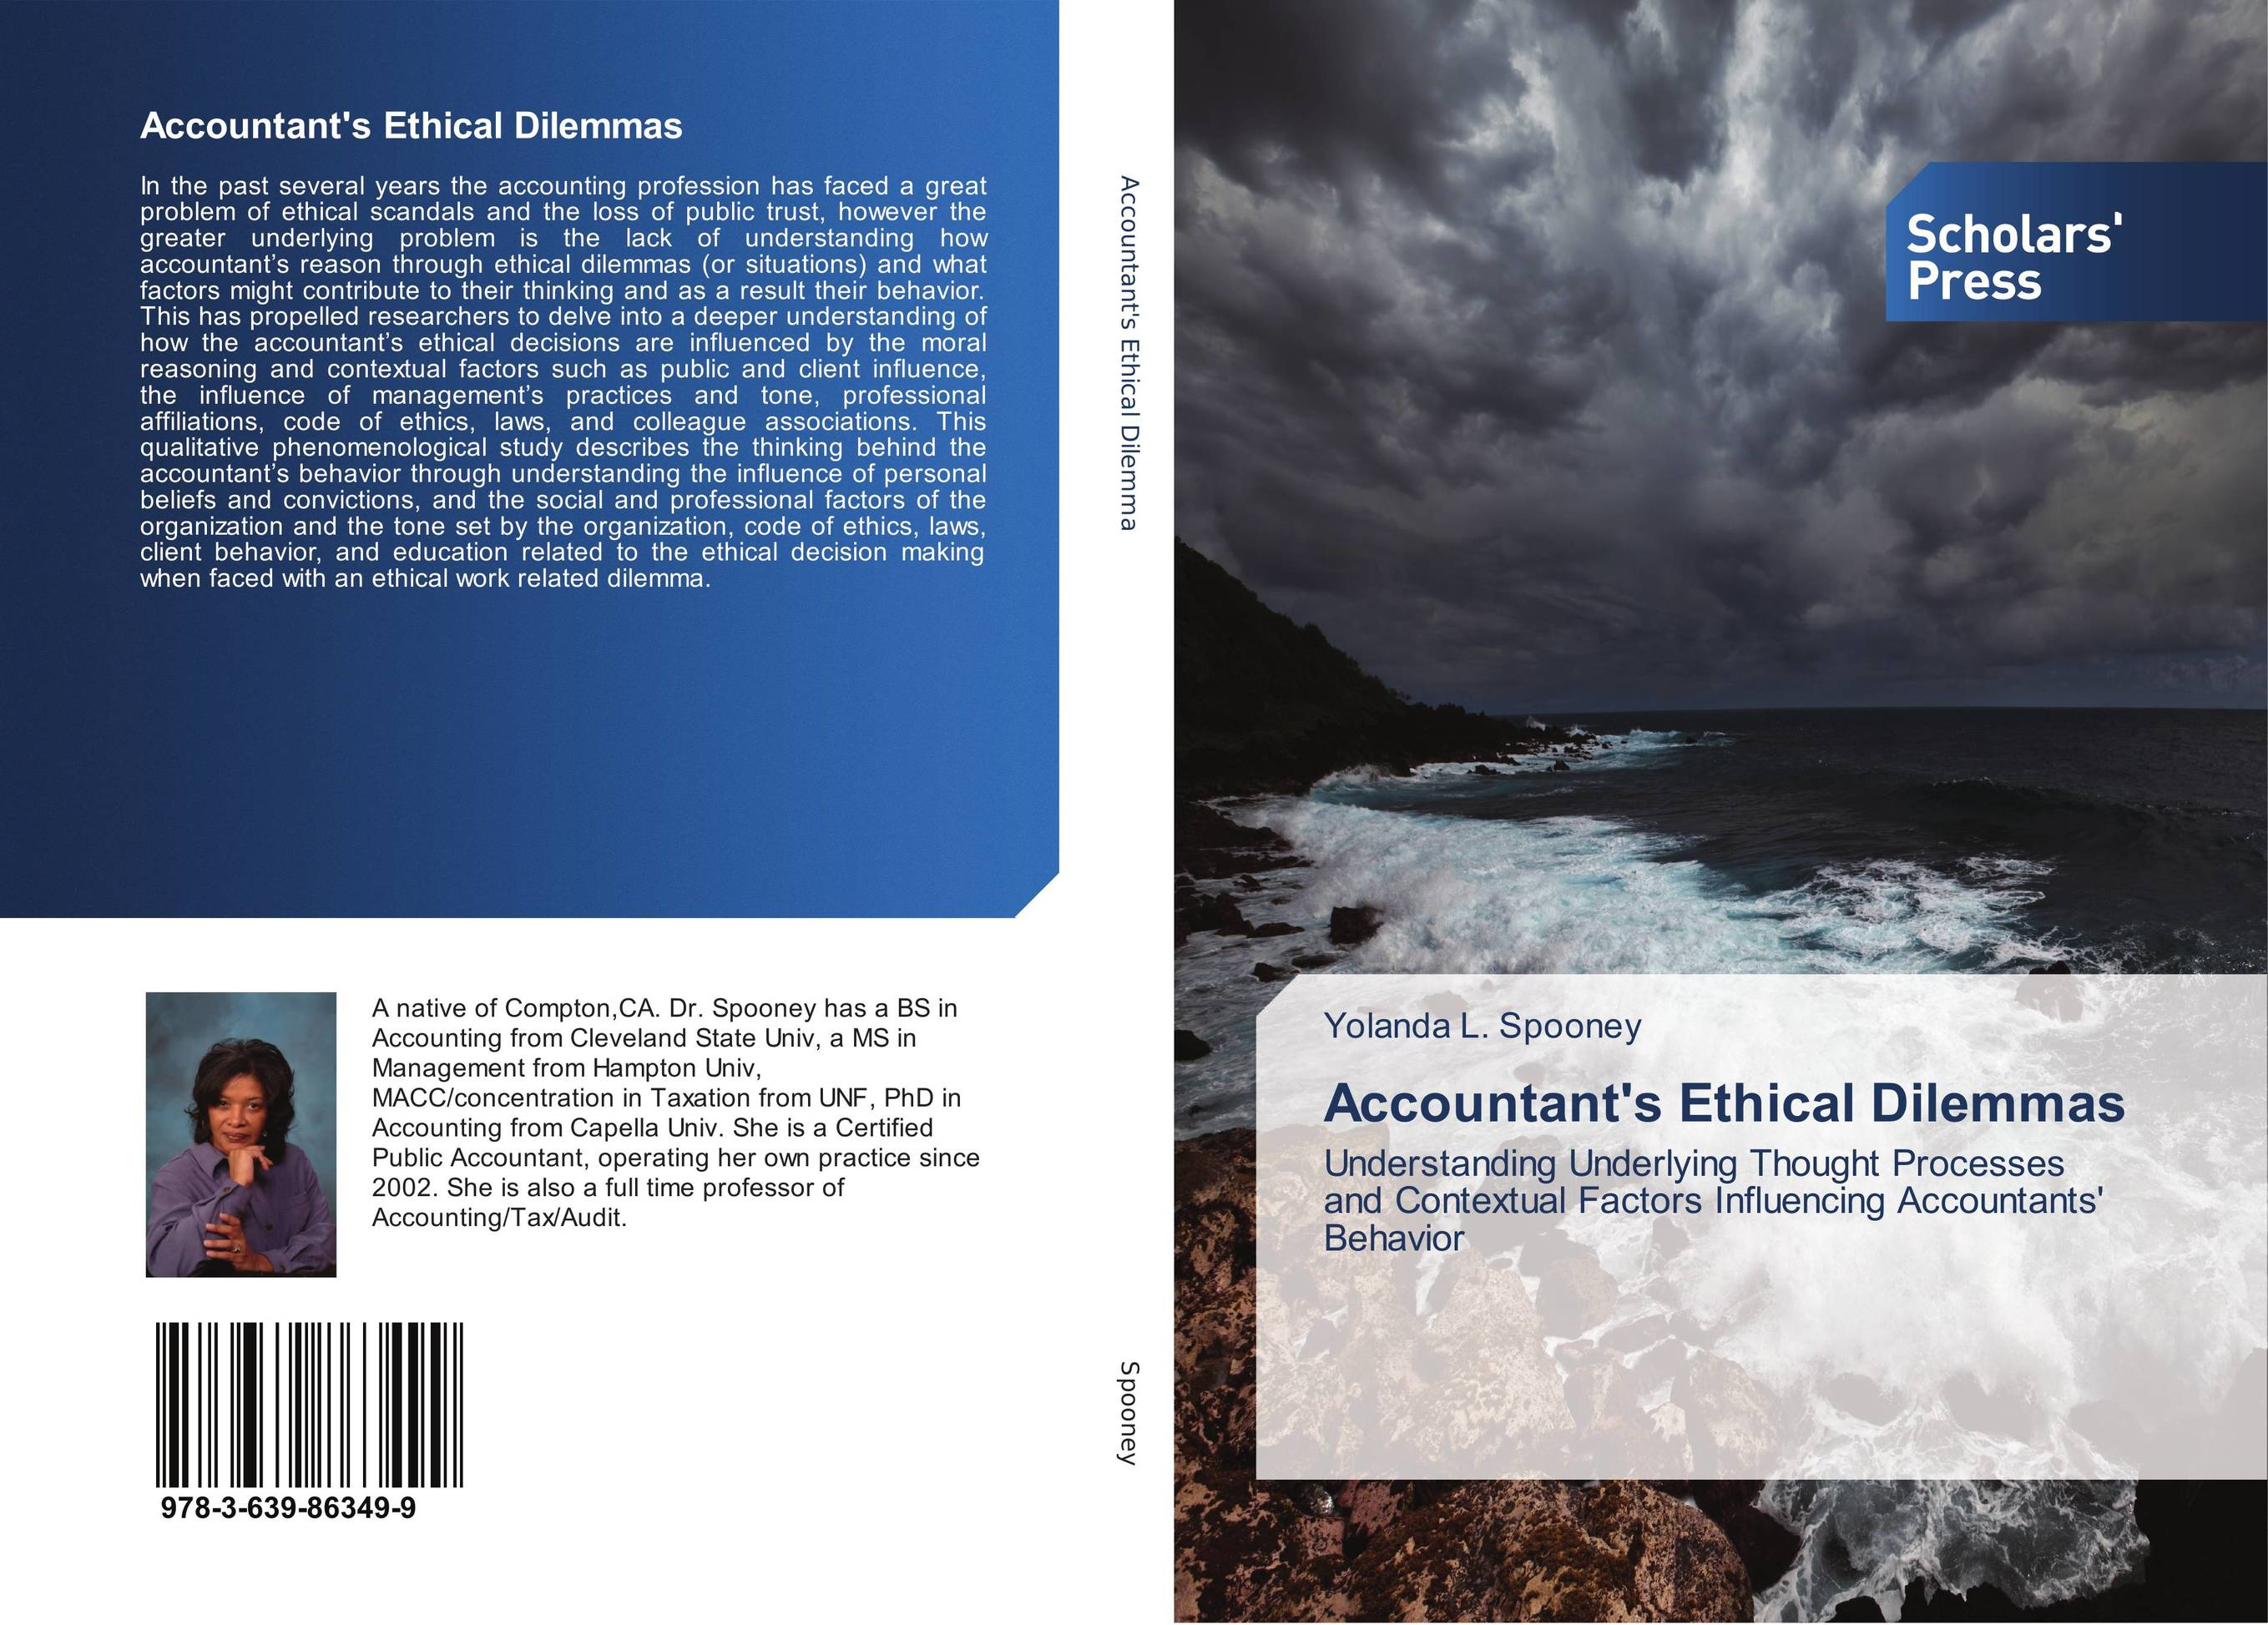 finding forrester ethical dilemmas •read the case study provided and identify all three of the ethical dilemmas presented •describe the nature and all dimensions of the three ethical issues •identify the ethical code numbers and definitions of each issue presented using both the apa and aca codes.